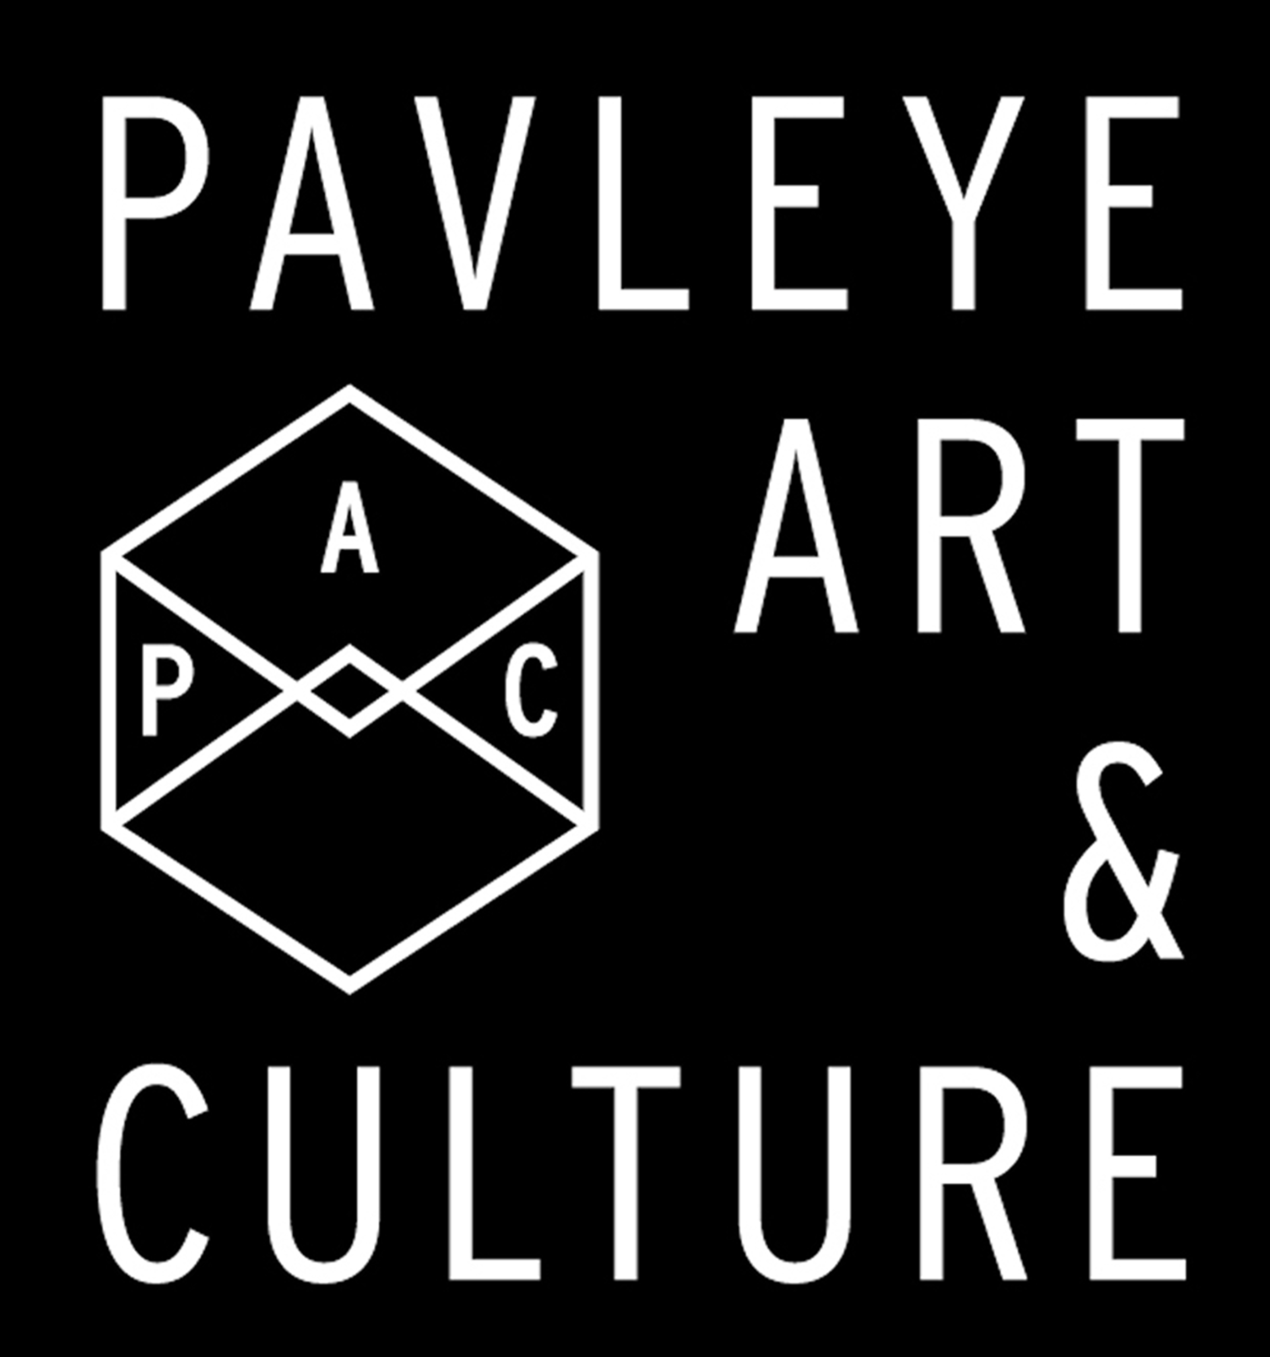 Special Projects — Pavleye Art & Culture